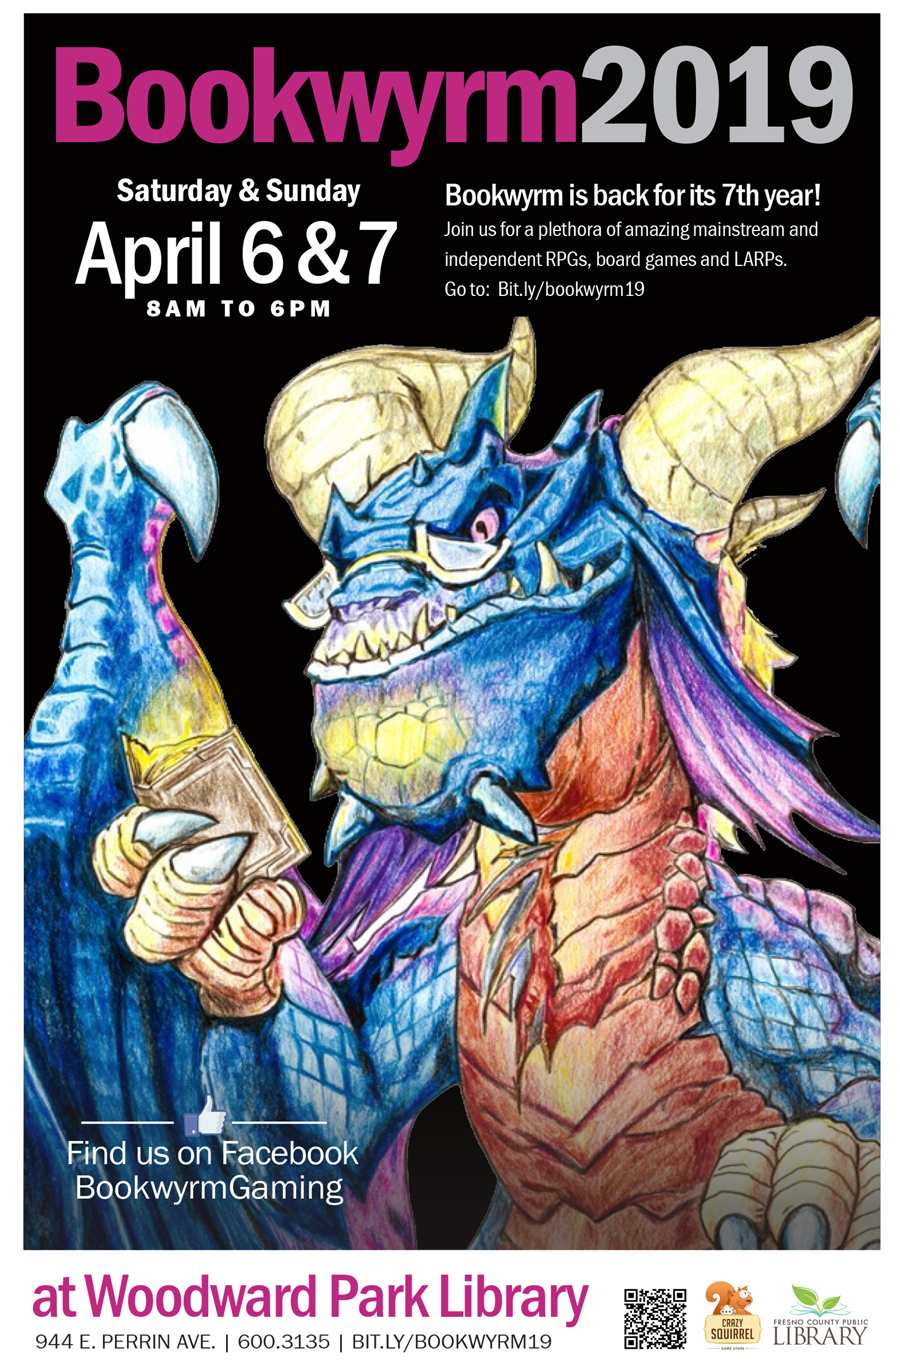 April-wdwd-Bookwyrm-flyer-2019